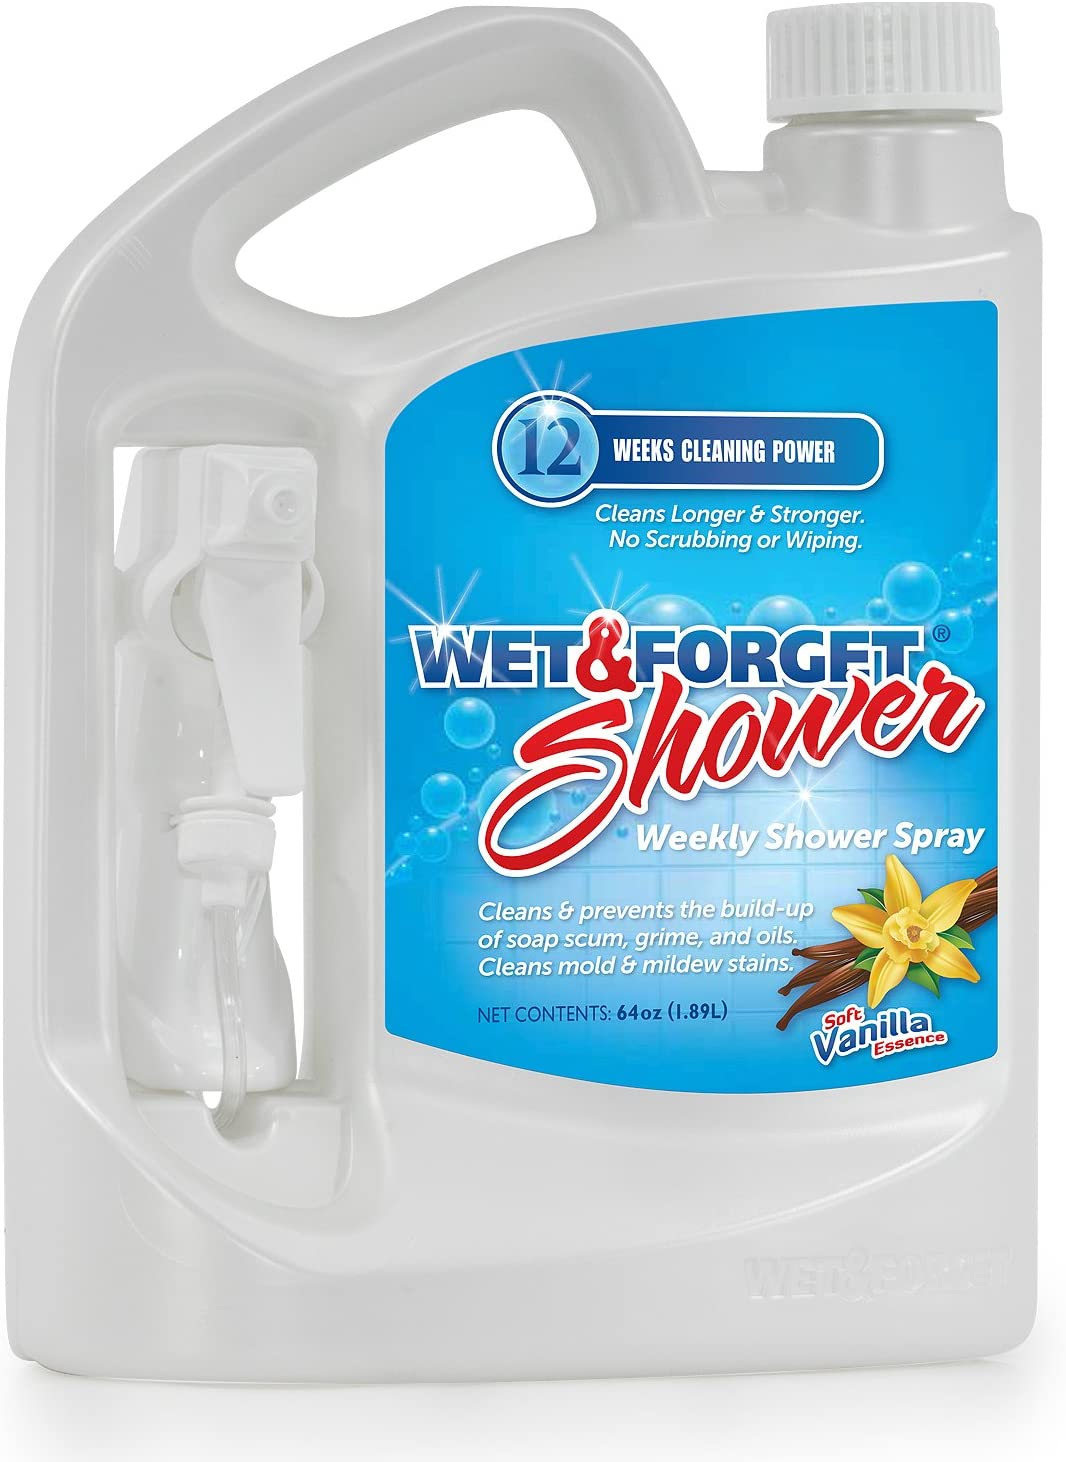 wet & forget shower clean